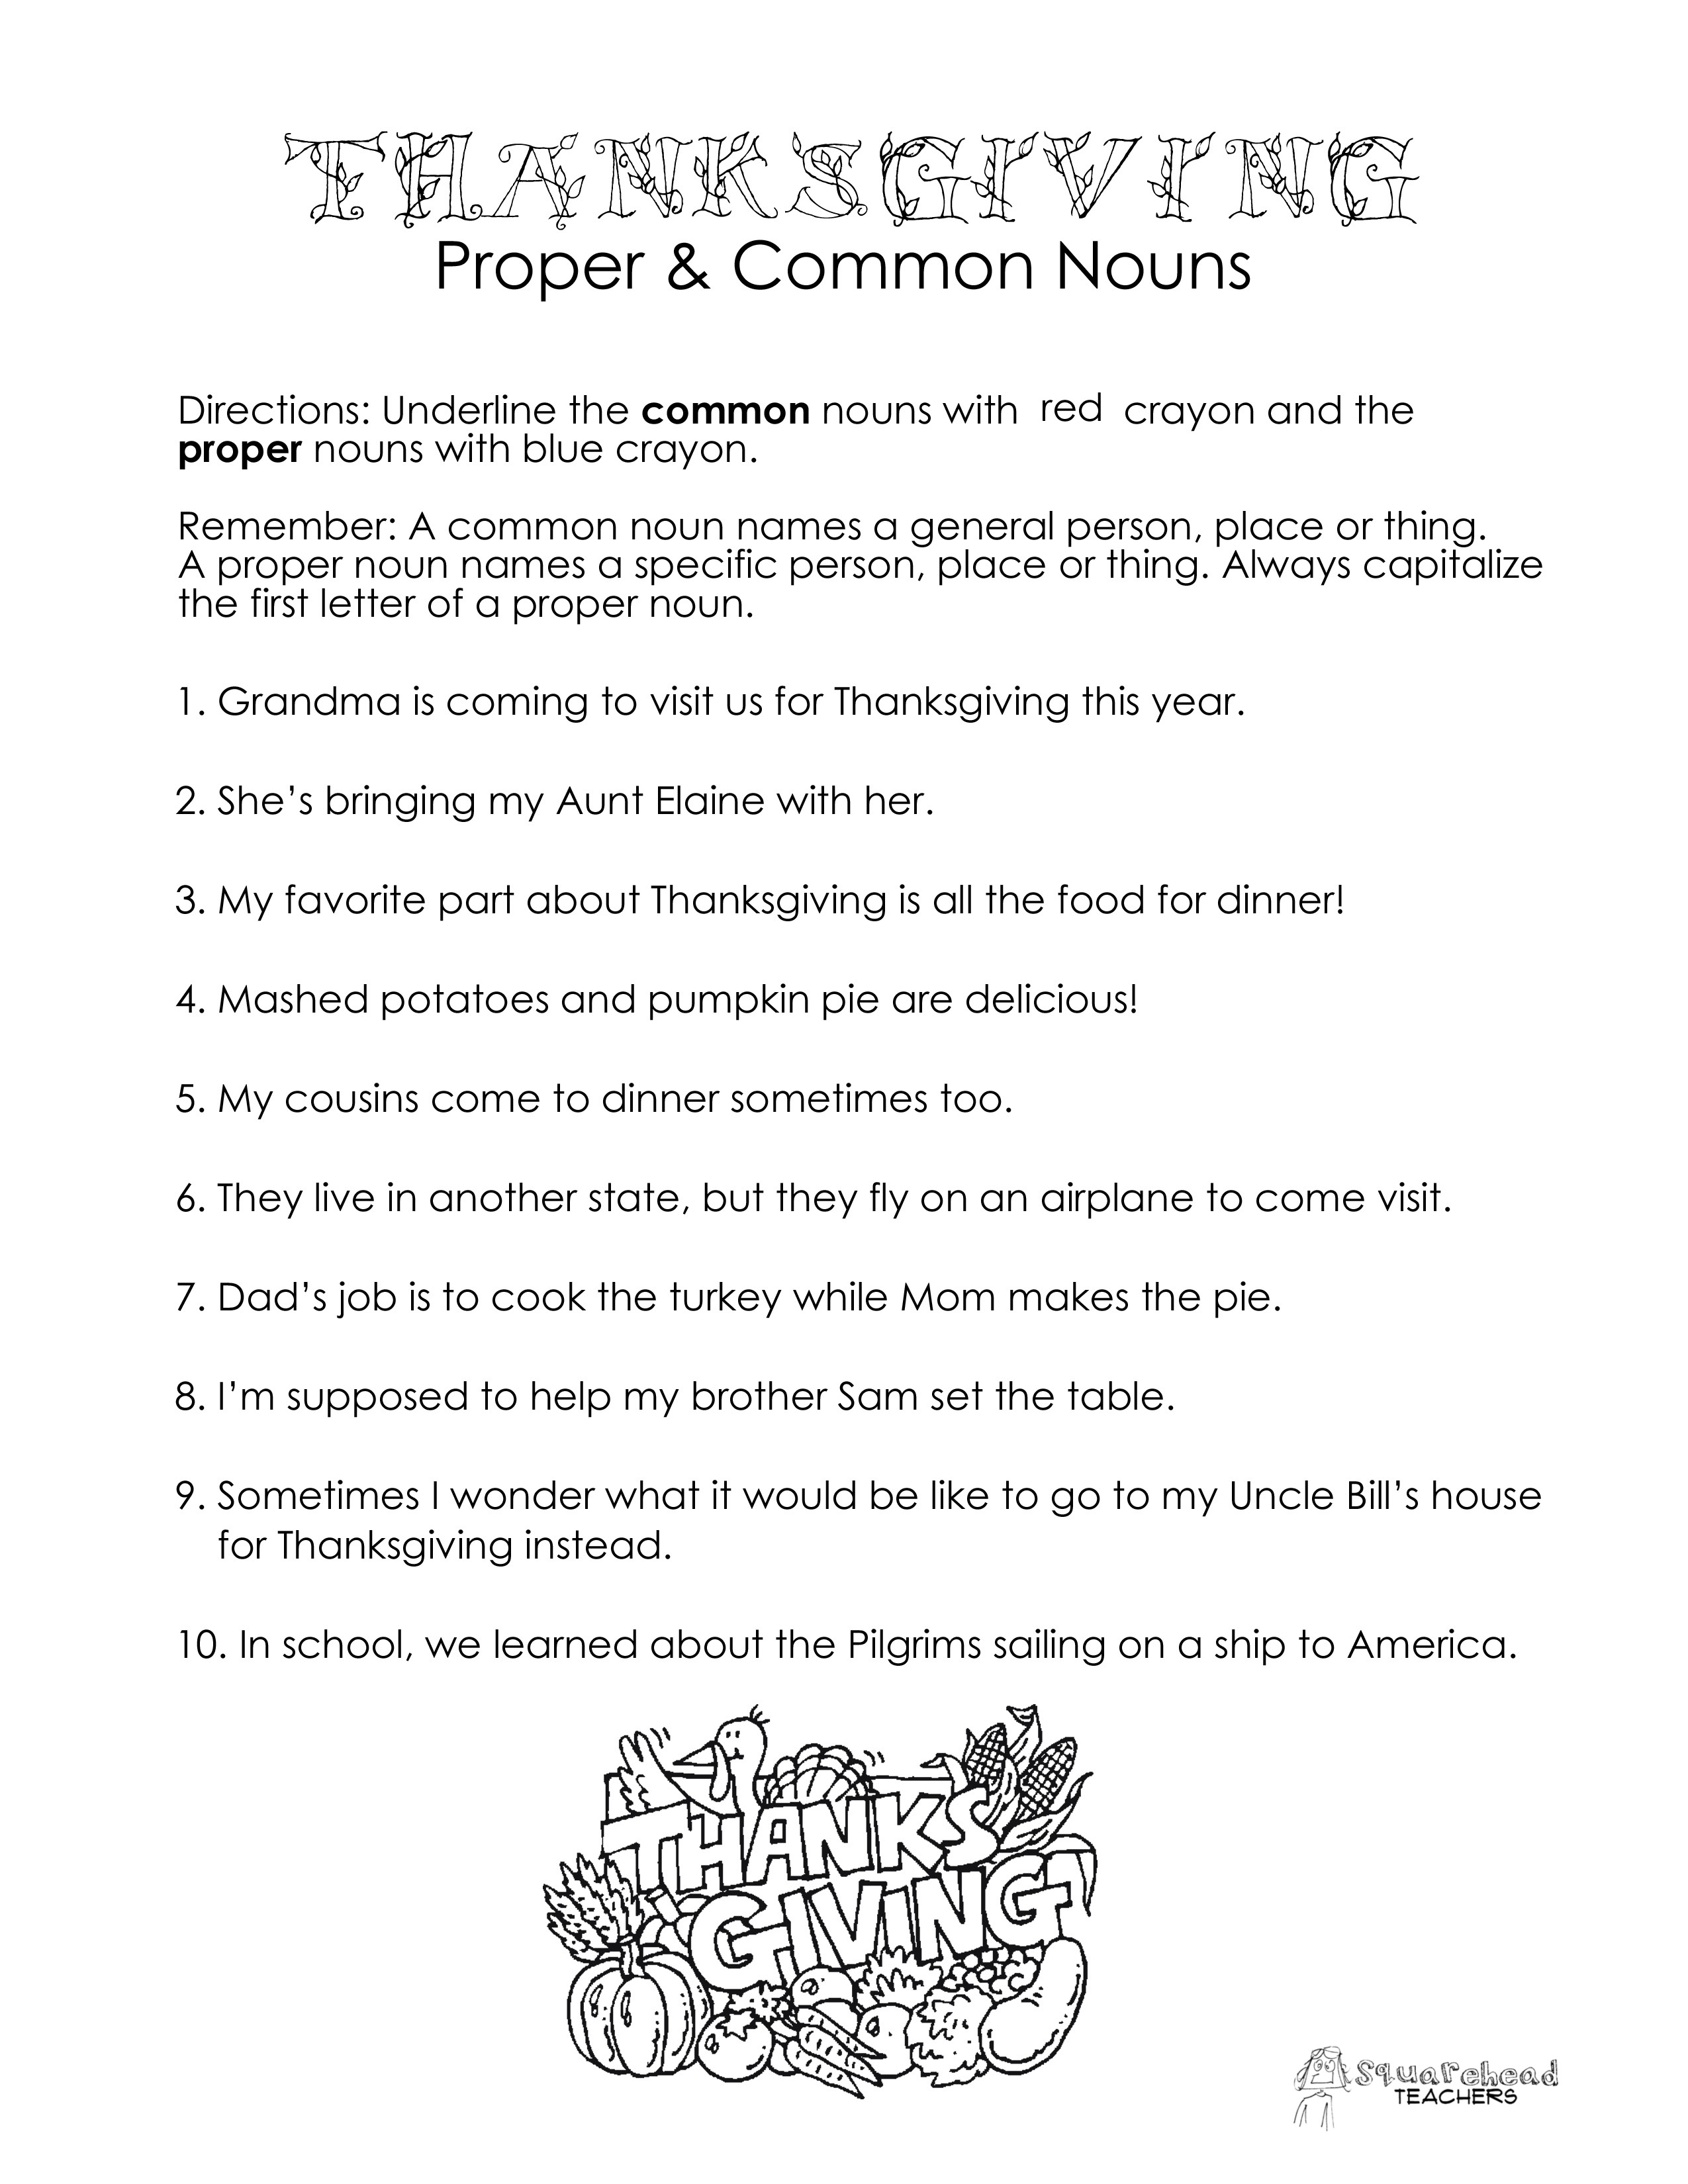 17 Best Images Of Silly Noun Worksheet